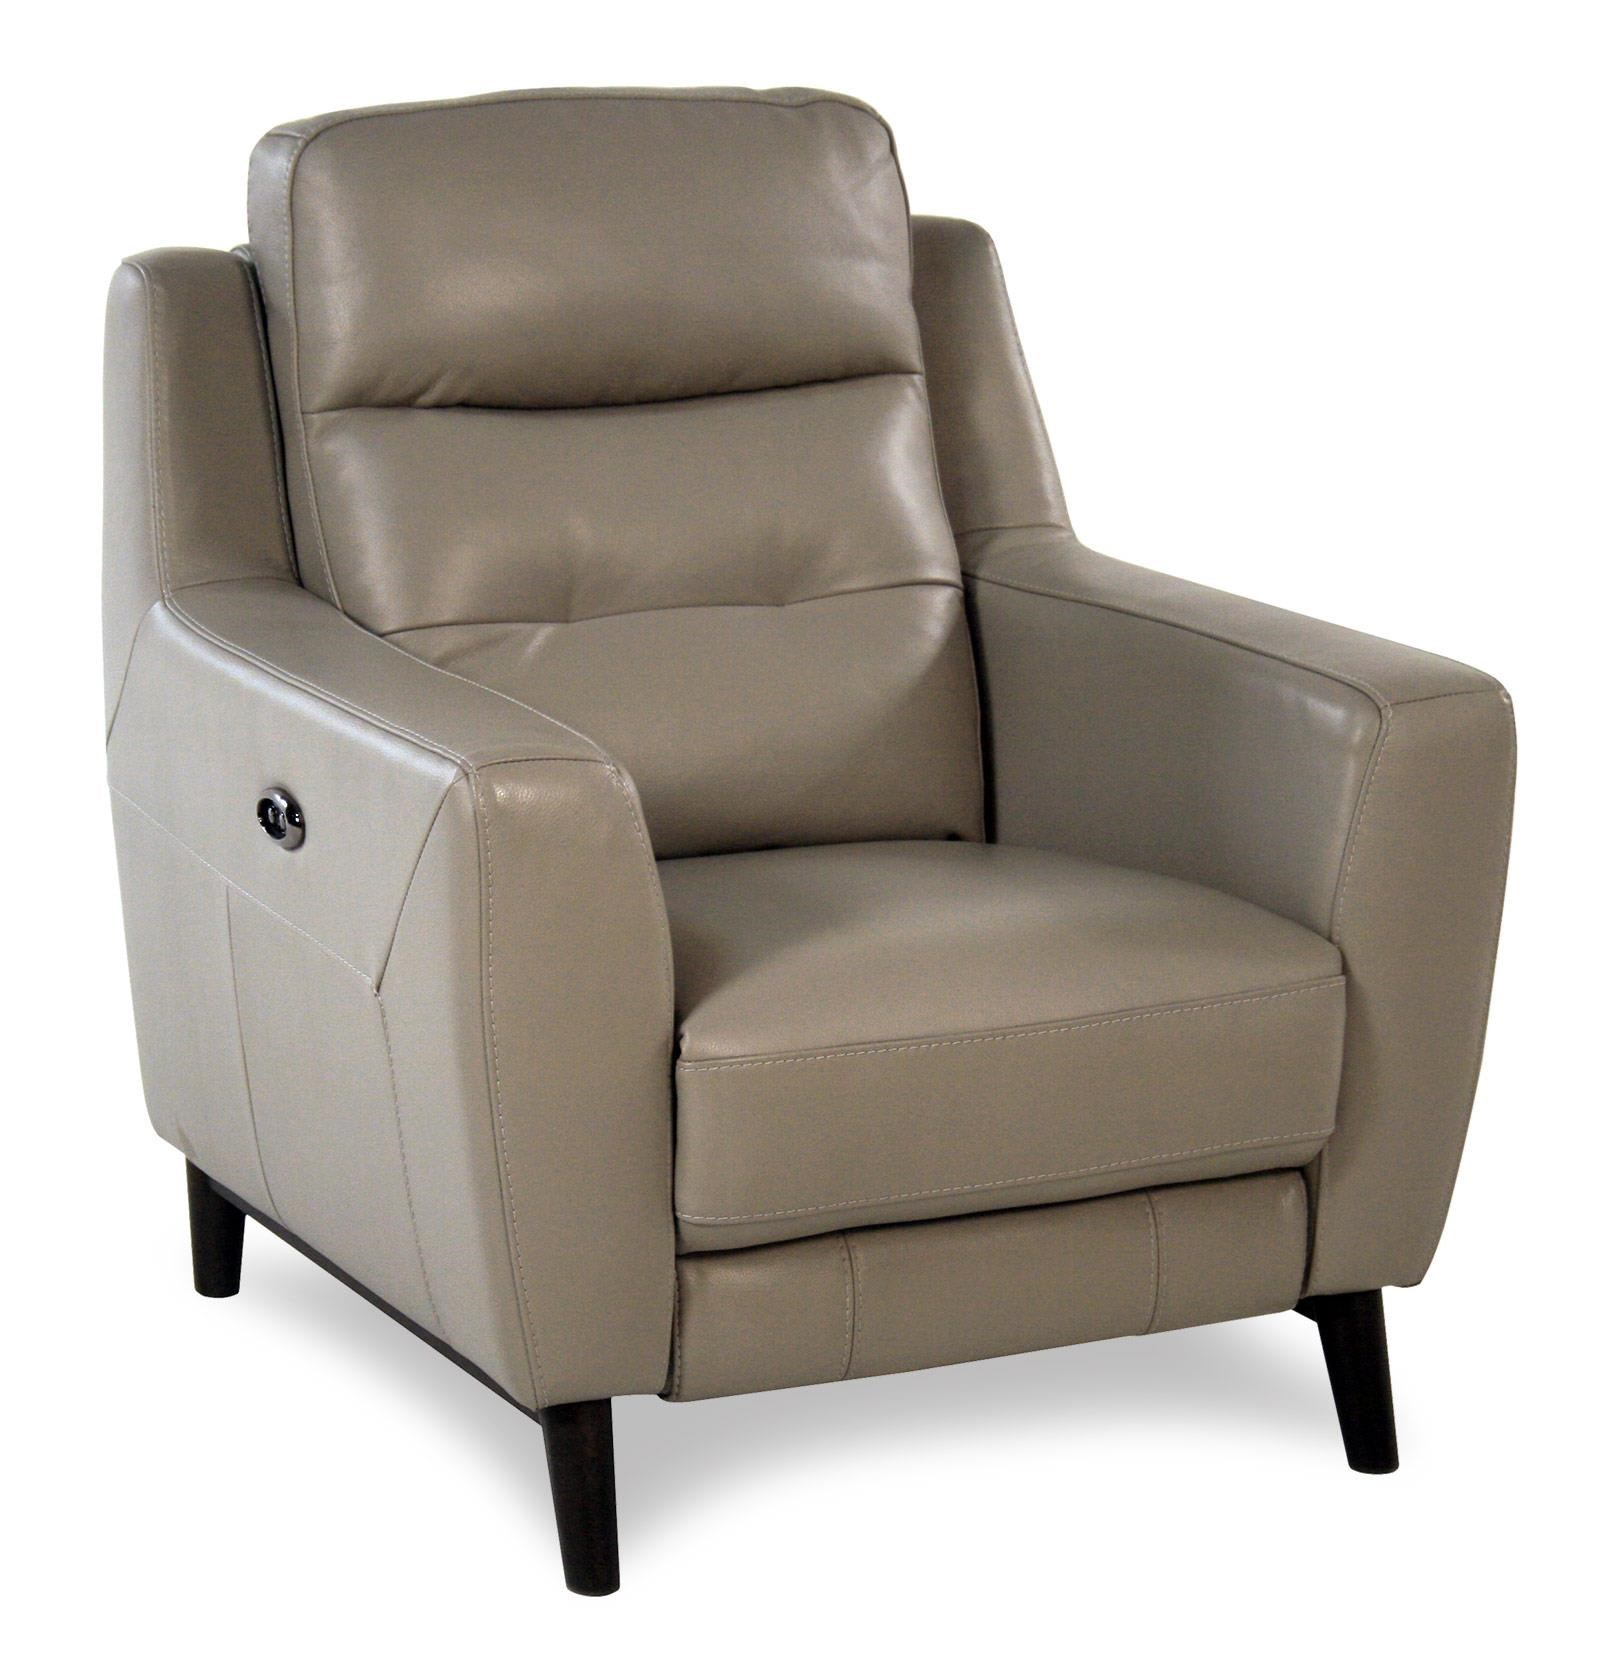 Giovani Fusion Power Leather Recliner - Item Number: 10859-1S1U-NC282